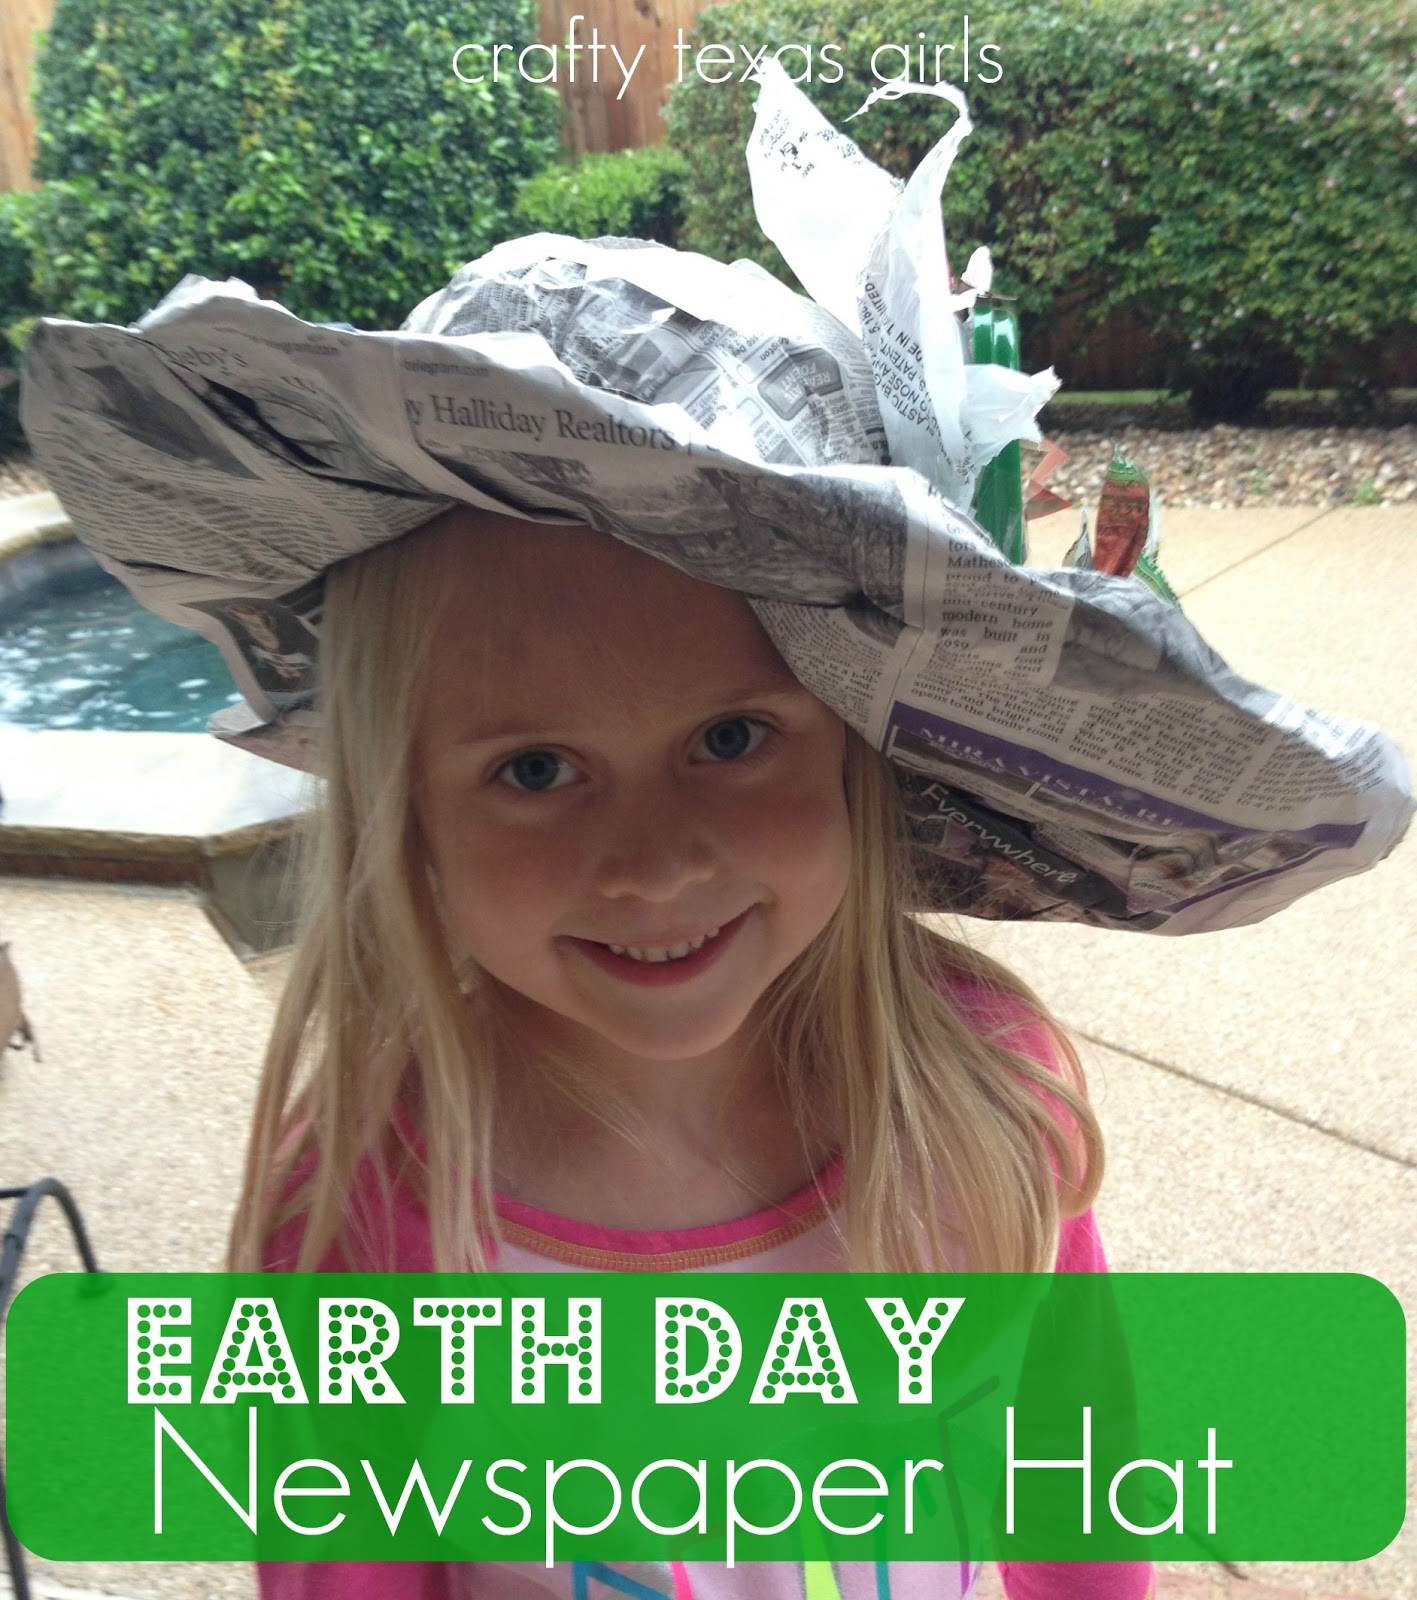 Crafty texas girls crafty how to earth day newspaper hat - How to reuse magazines seven inspired ideas ...